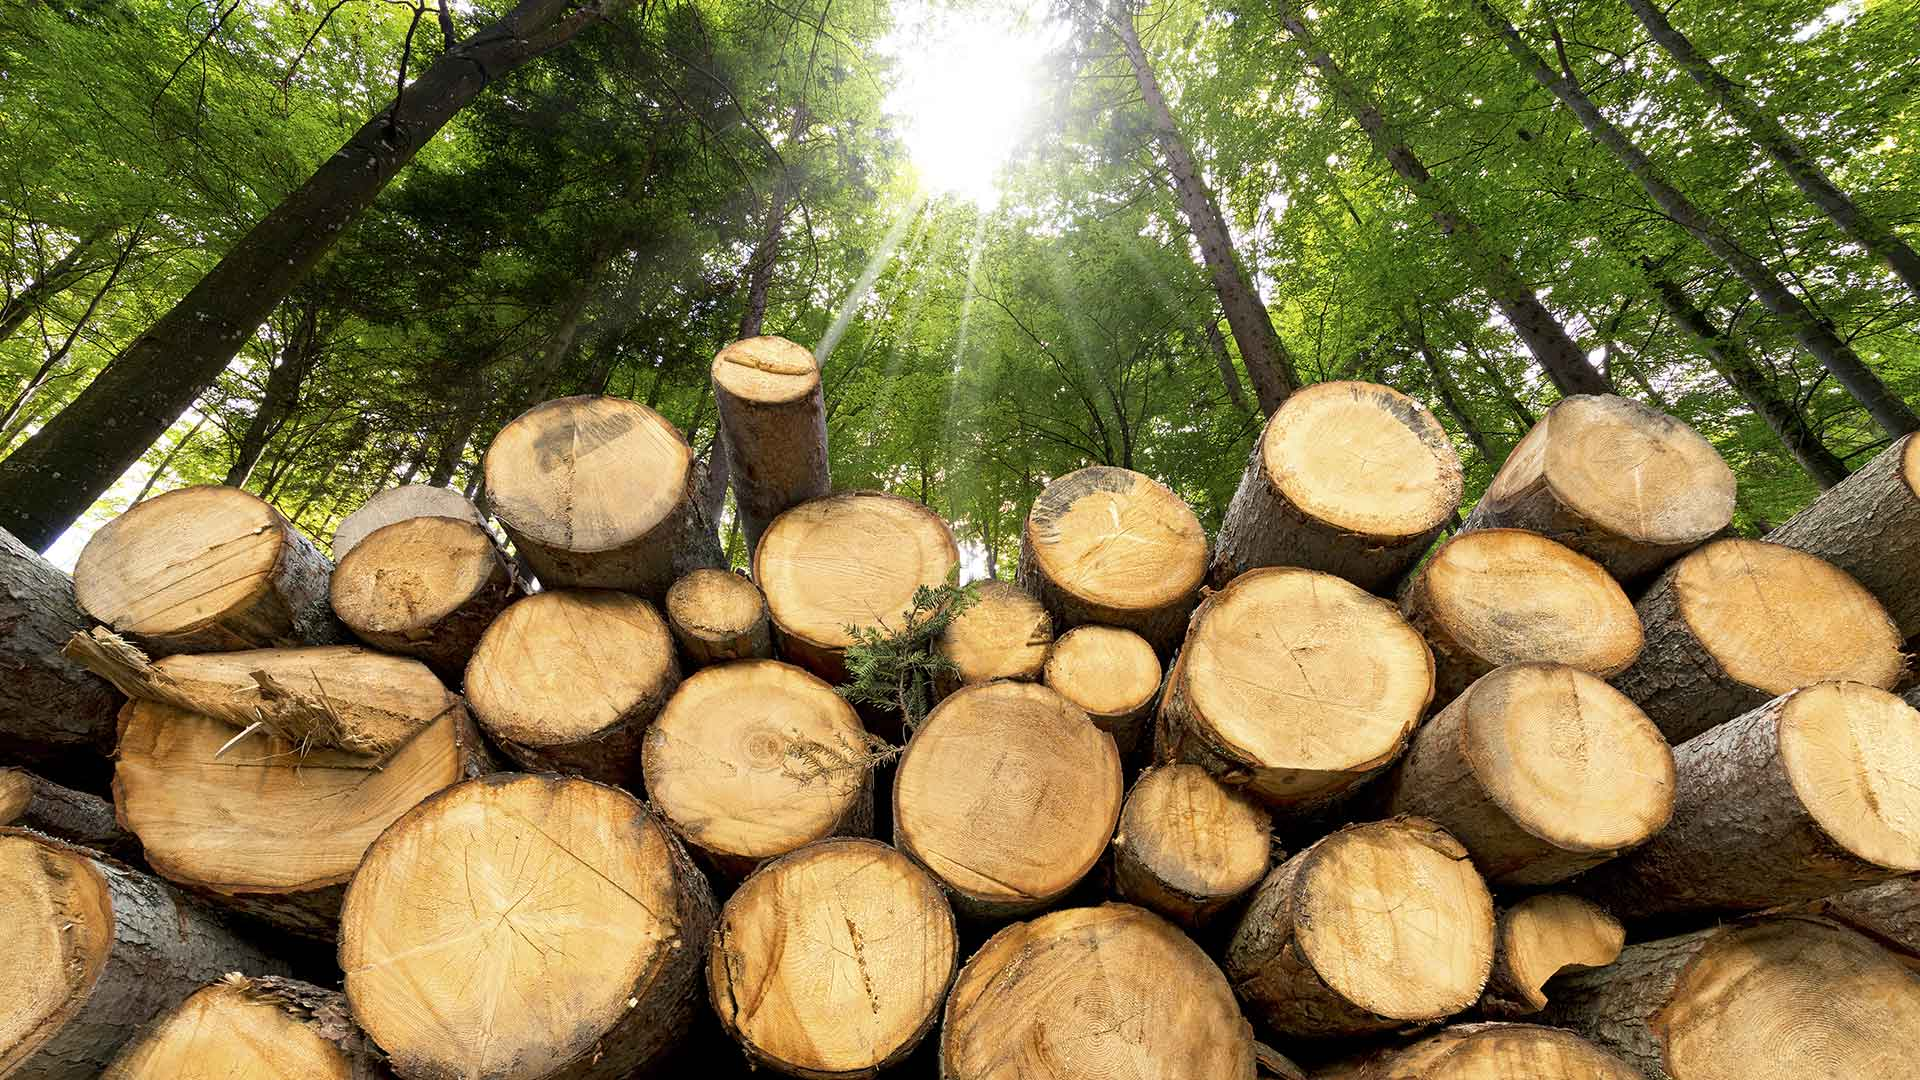 Freshly cut wood logs in a sunny forest clearing